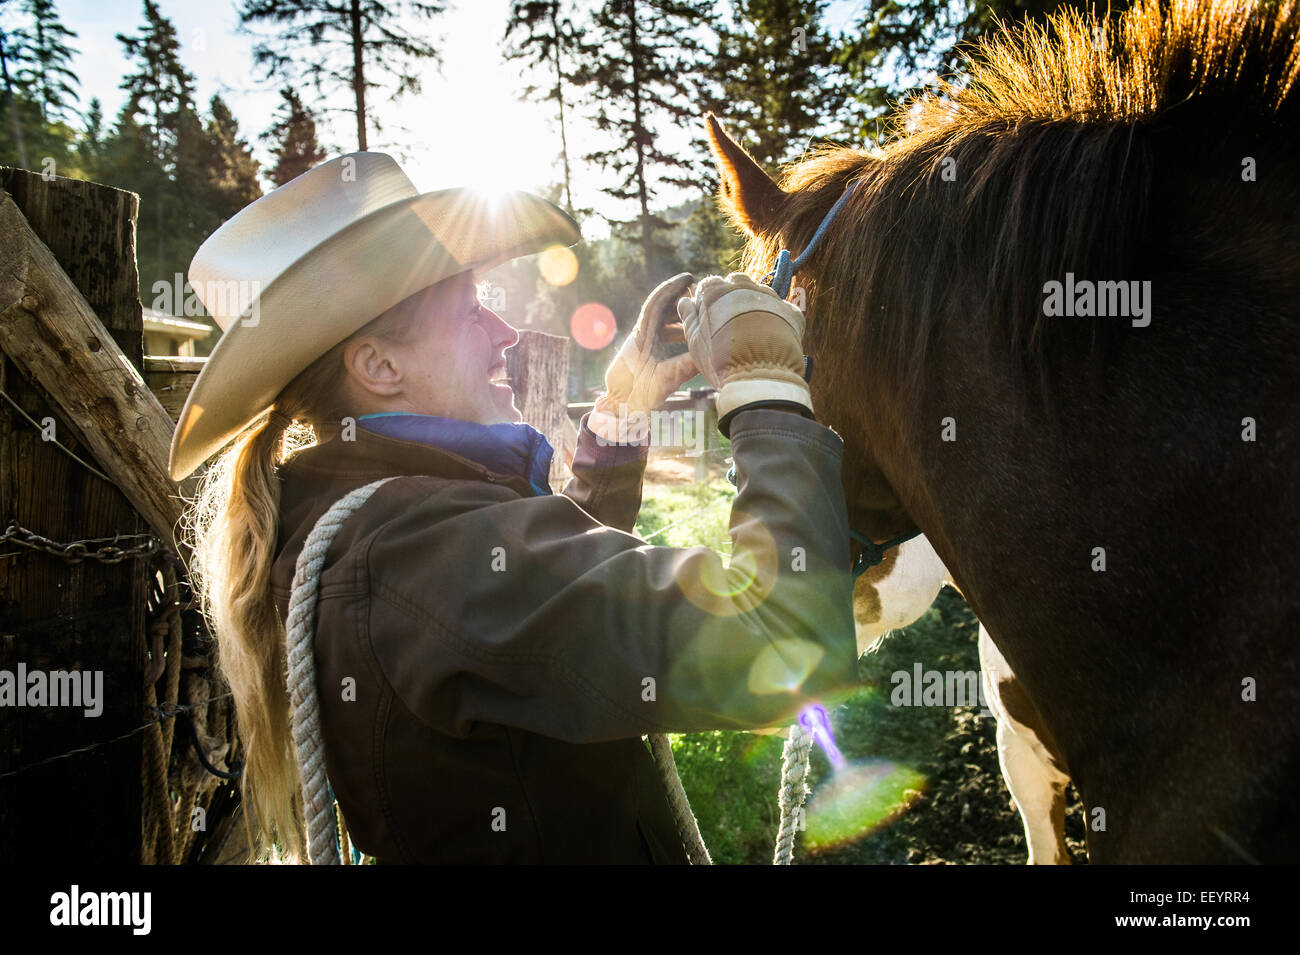 Horse are haltered at the Artemis Acres Guest Ranch near Kalispell, Montana. (Photo by Ami Vitale) - Stock Image